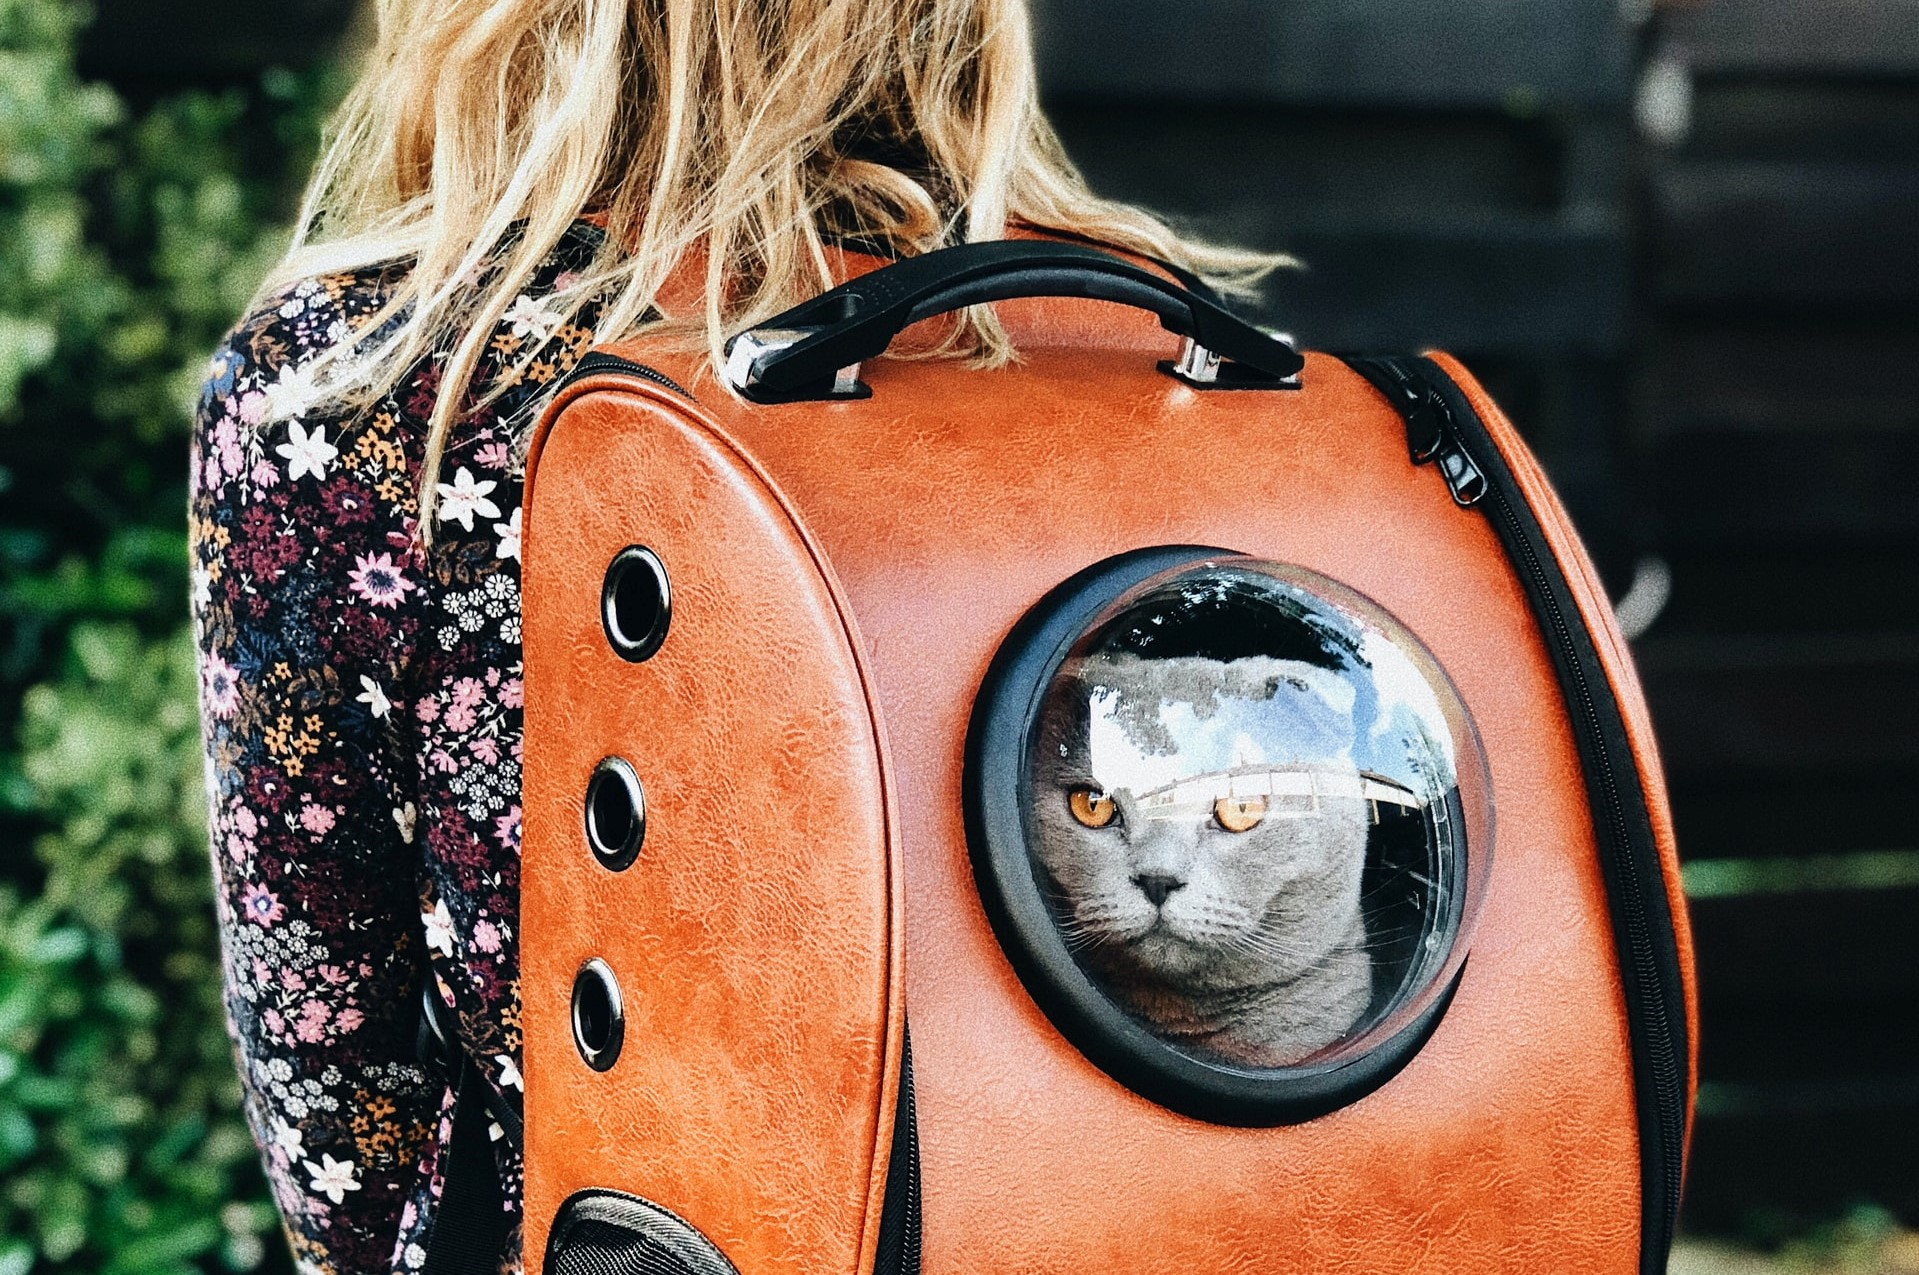 A woman travels with her cat in a pet carrier